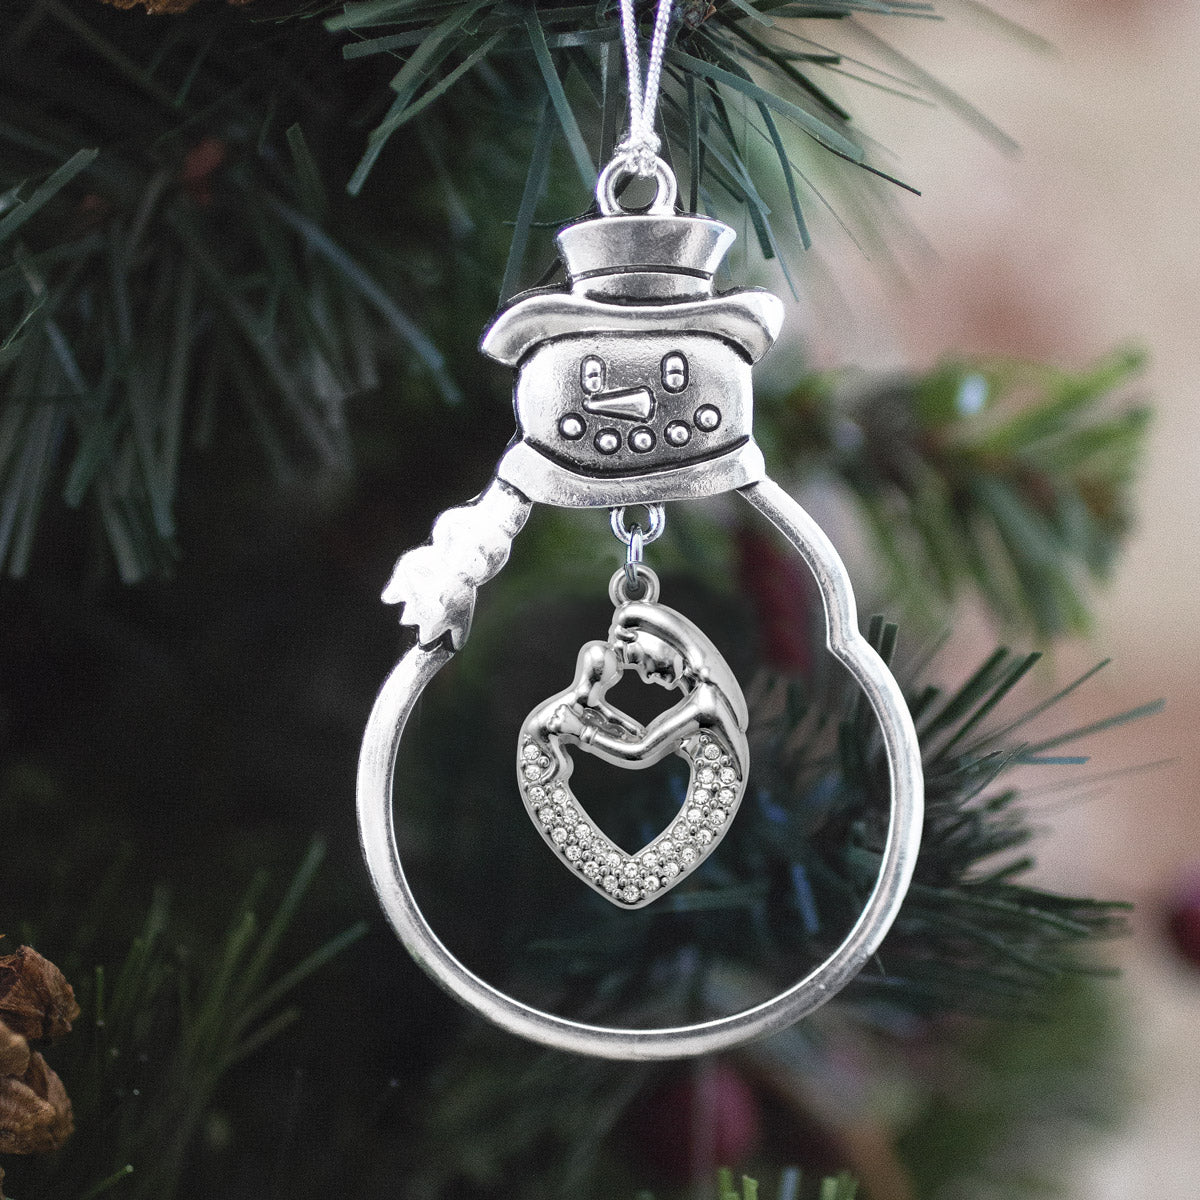 1.0 Carat Mother and Child Charm Christmas / Holiday Ornament